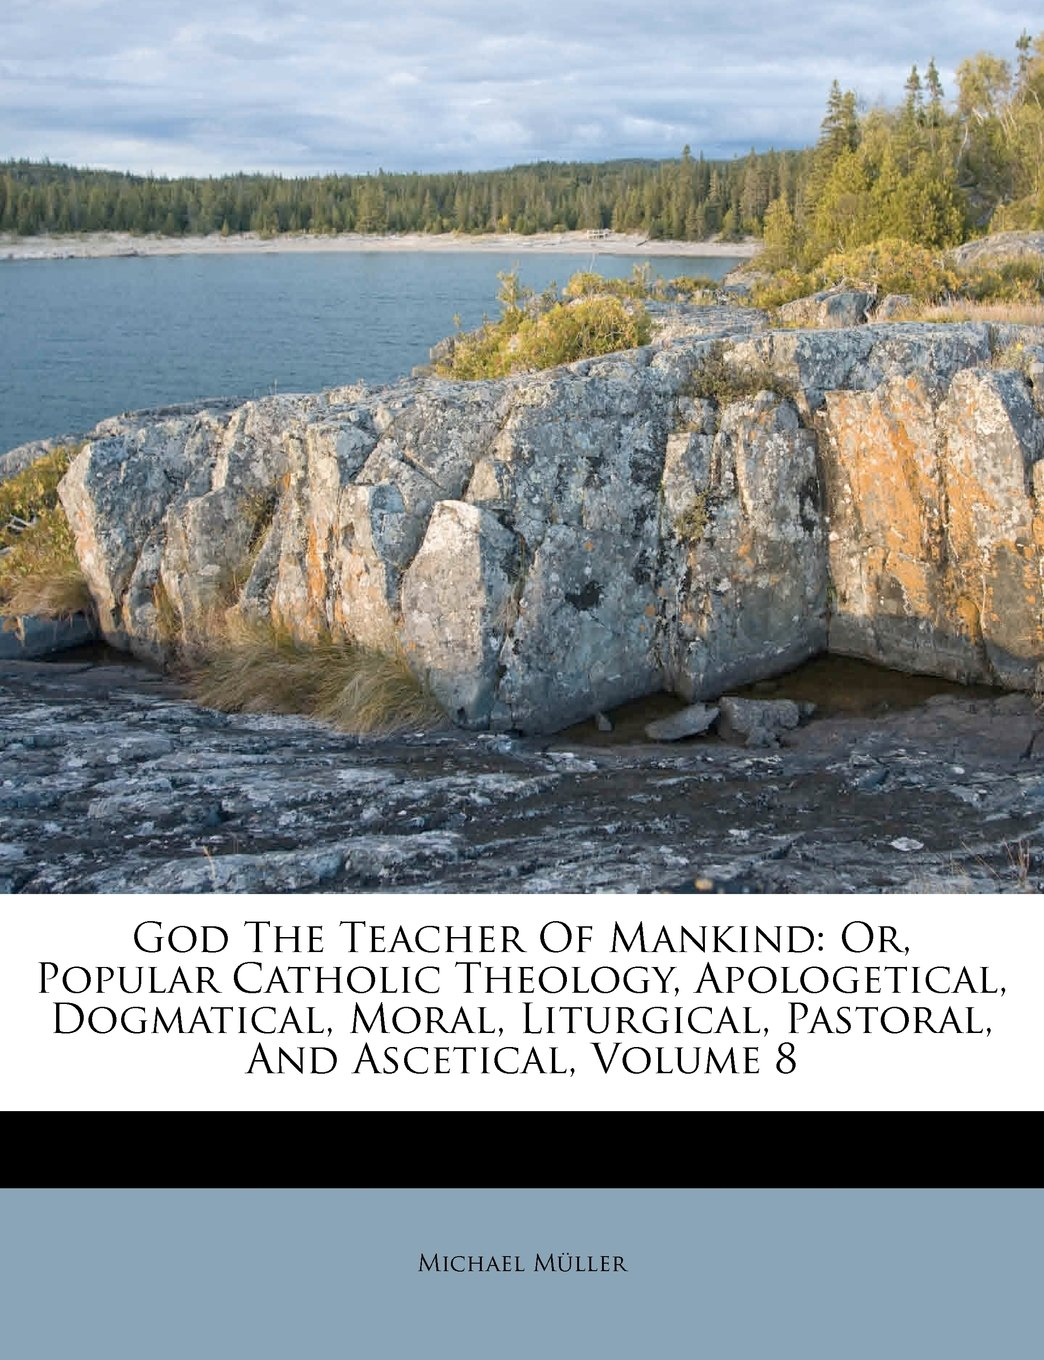 Download God The Teacher Of Mankind: Or, Popular Catholic Theology, Apologetical, Dogmatical, Moral, Liturgical, Pastoral, And Ascetical, Volume 8 PDF